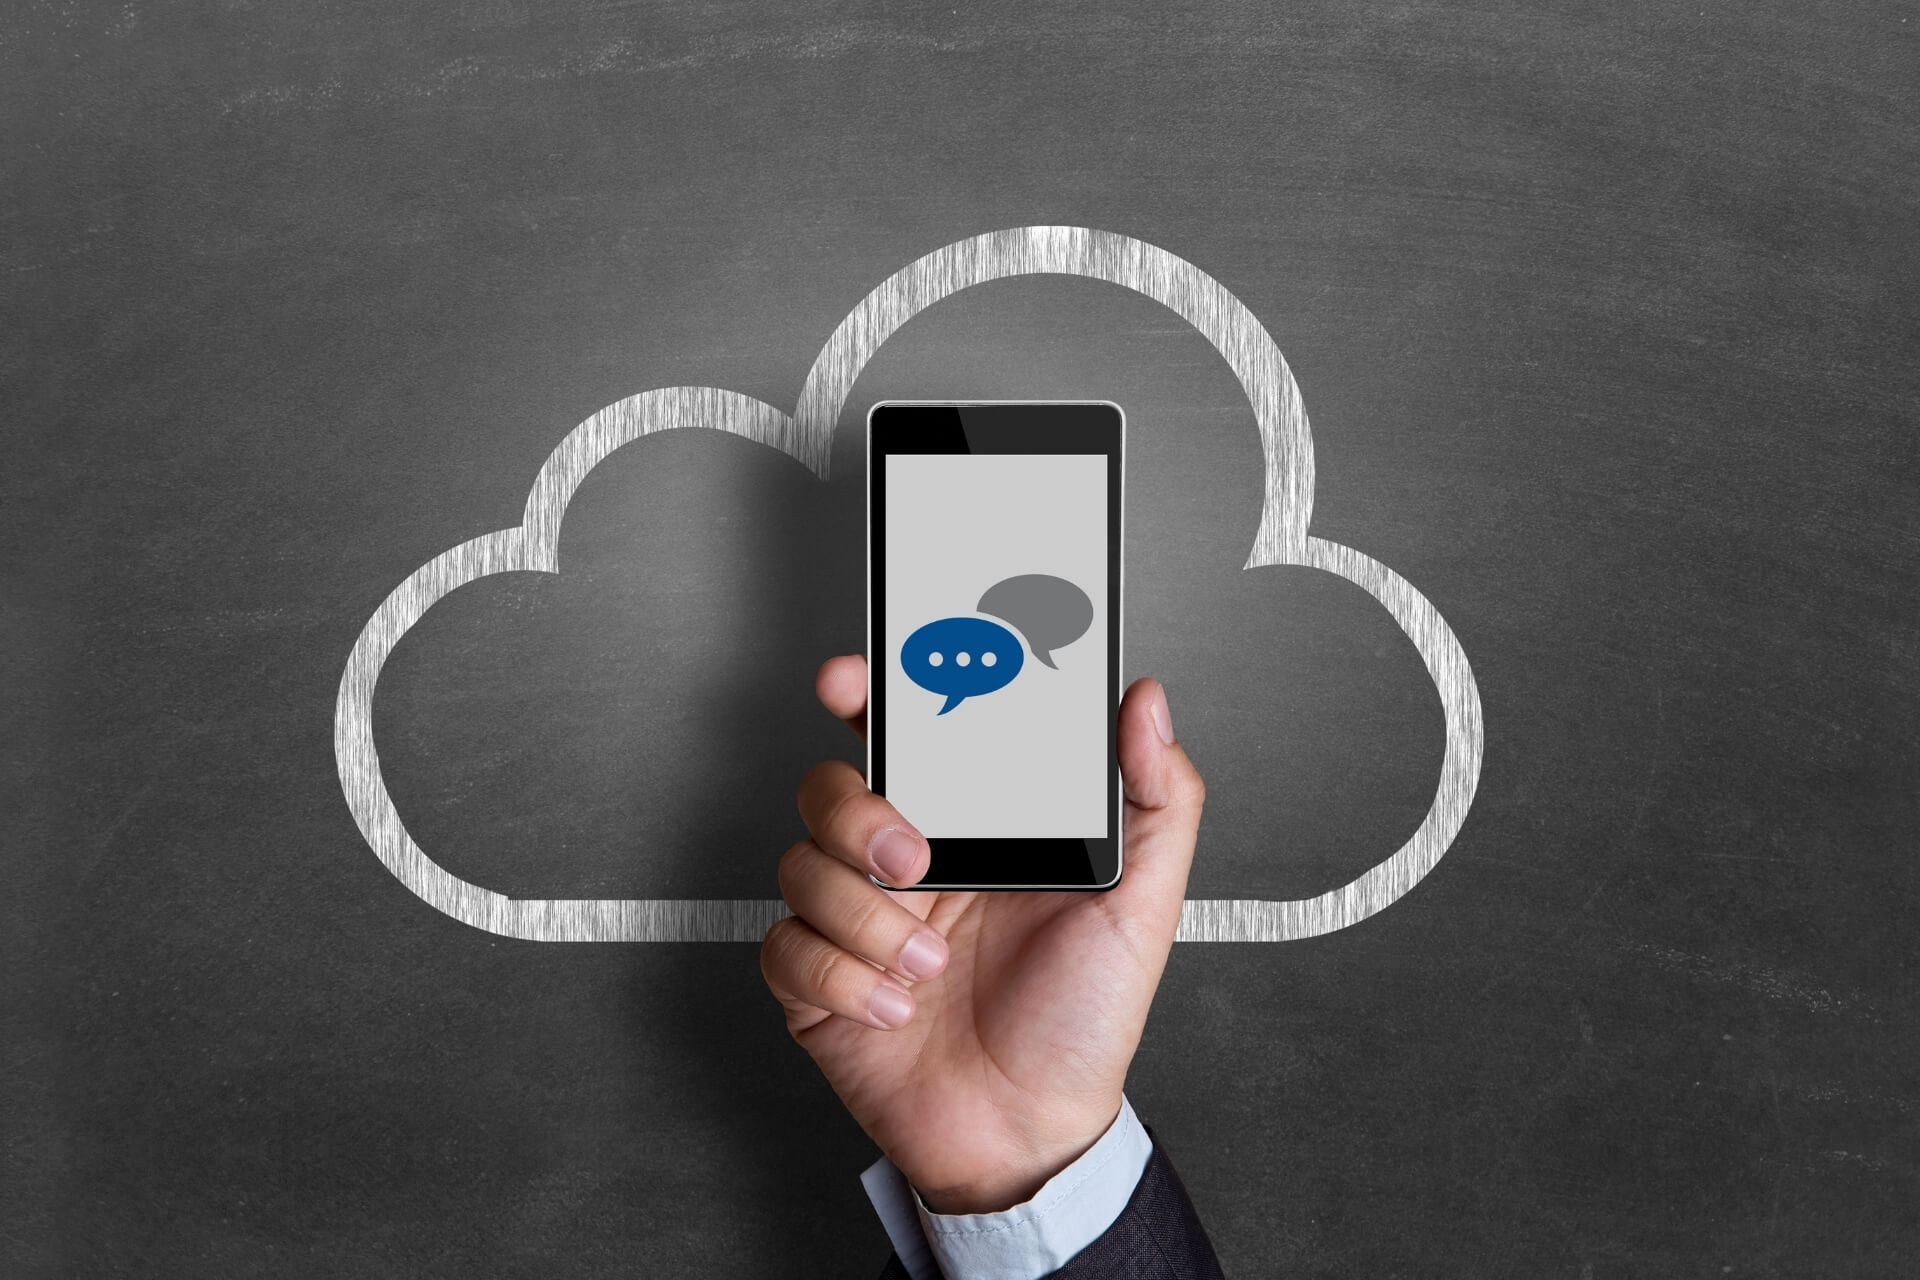 A phone displaying cloud communication icons